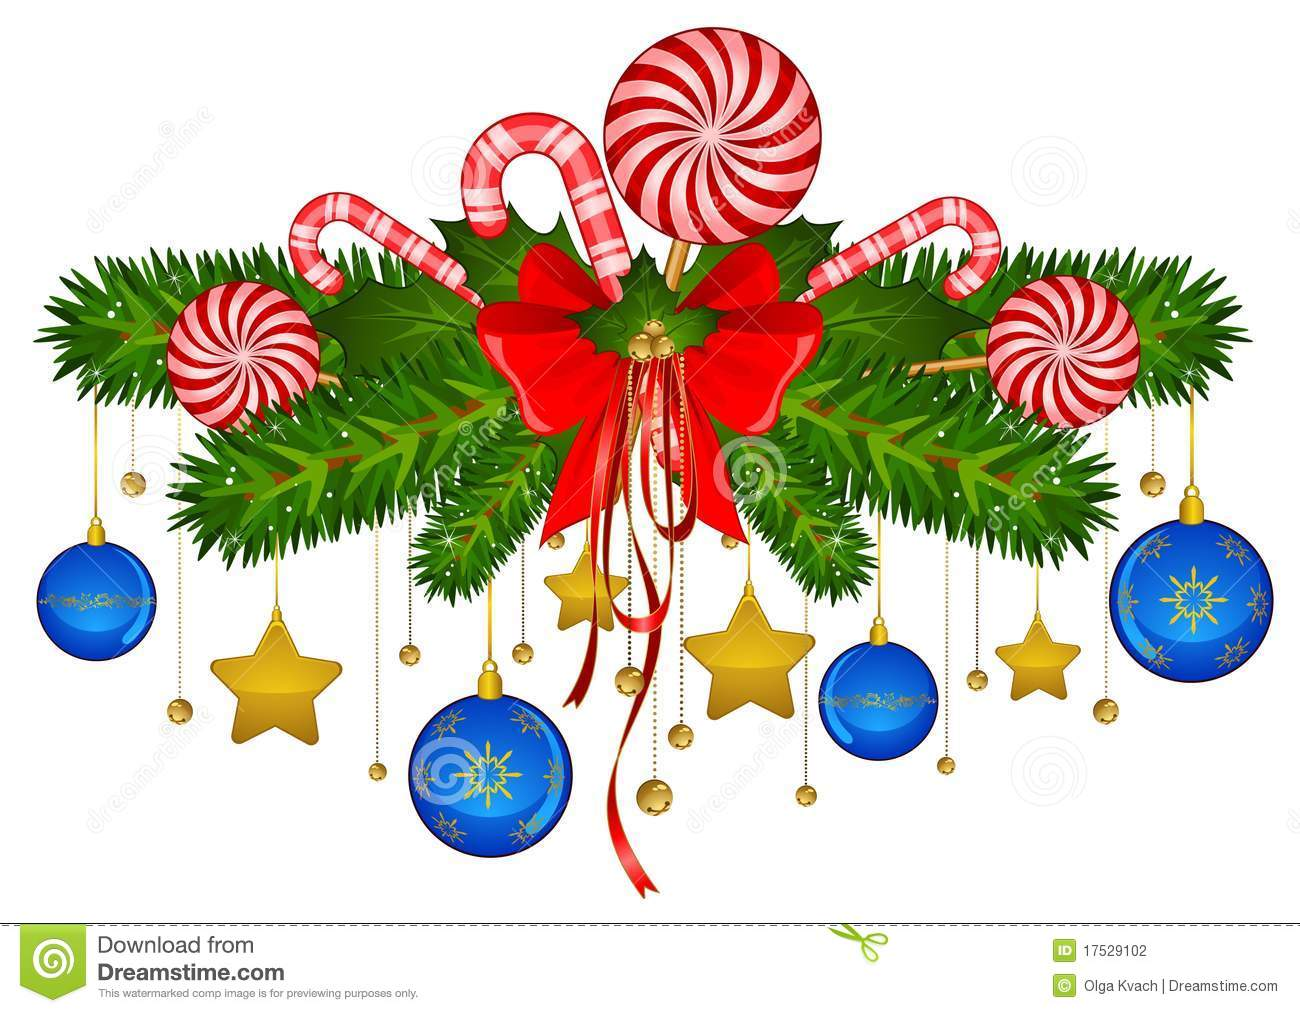 Christmas Decorating Clip Art.Candy Cane And Bolls Stock Vector Illustration Of Holiday